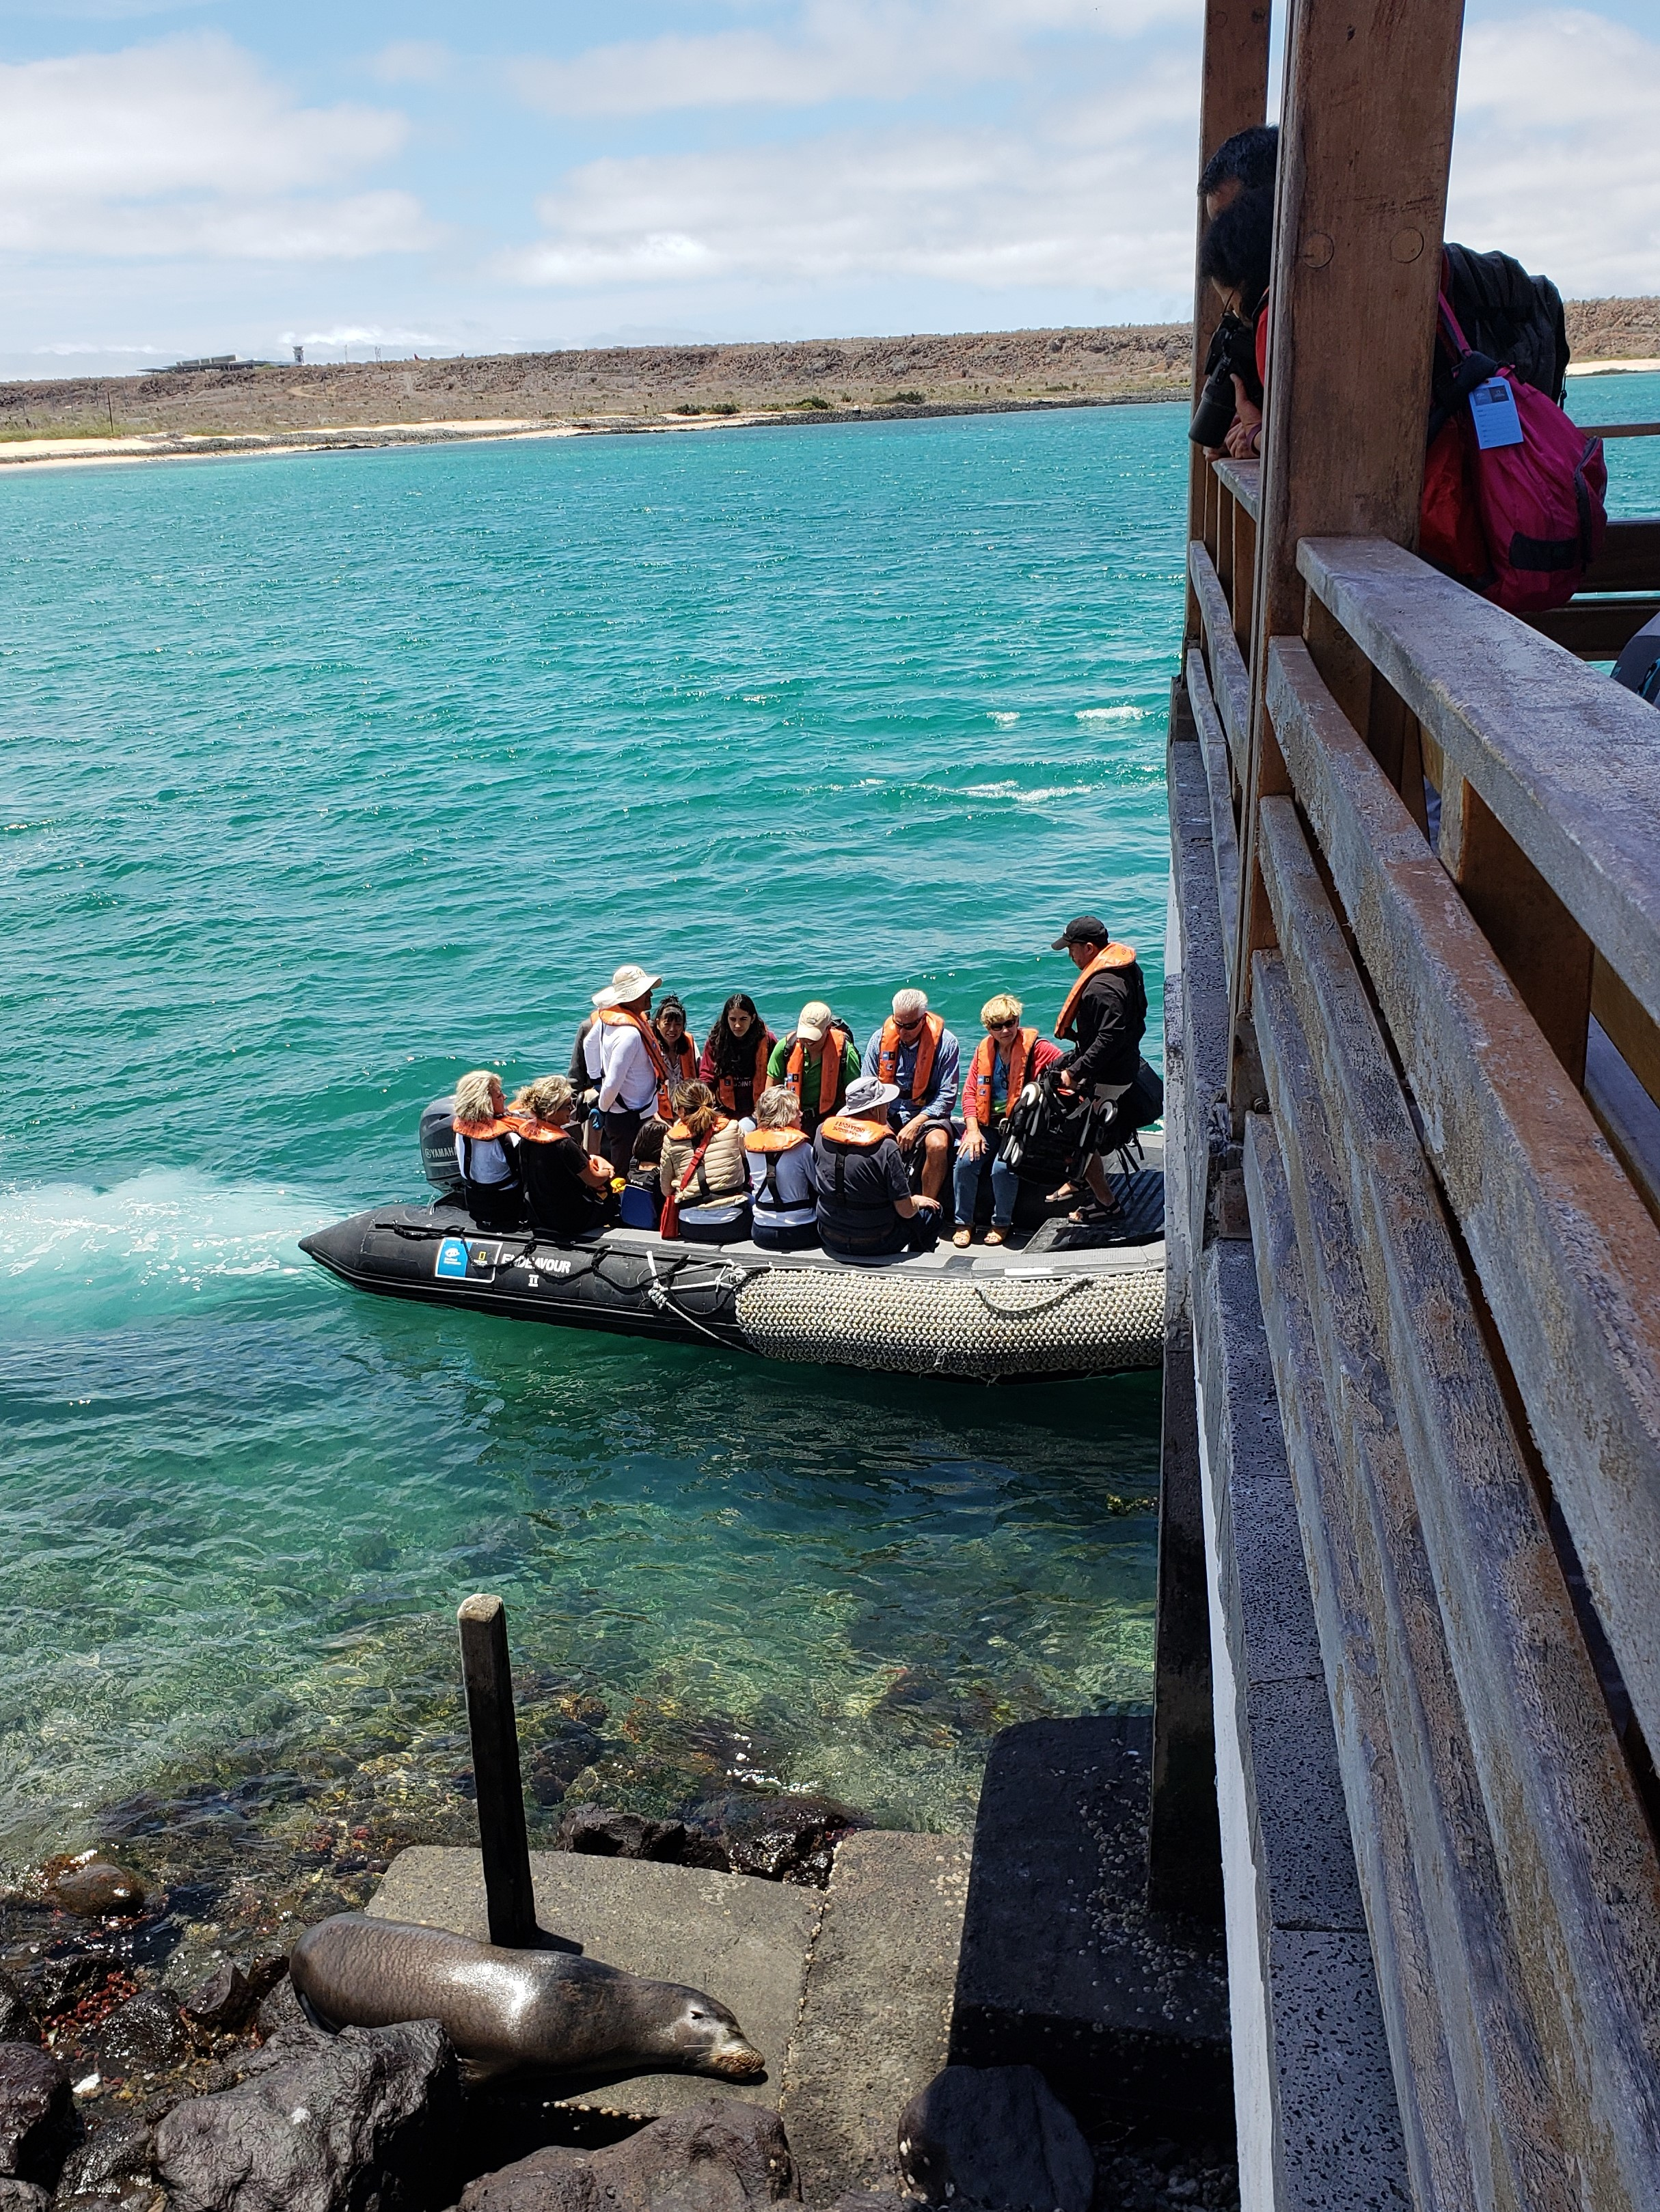 Our first zodiac ride, near a sea lion!  Photo by Alison Travis